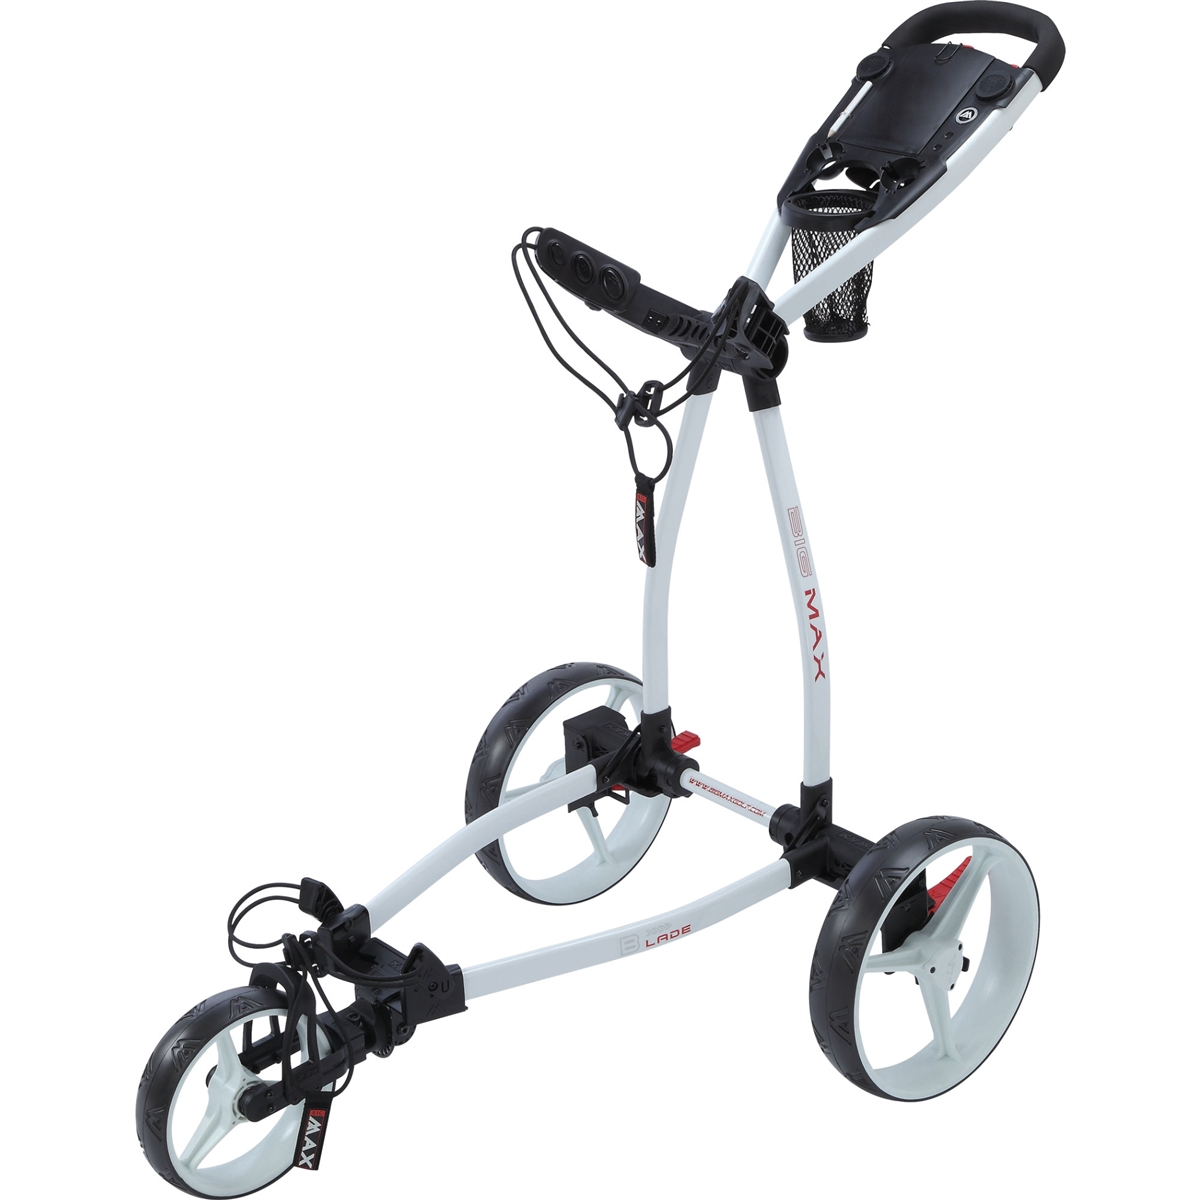 Big Max Blade Golf Cart Golf Push Cart Golf Trolley